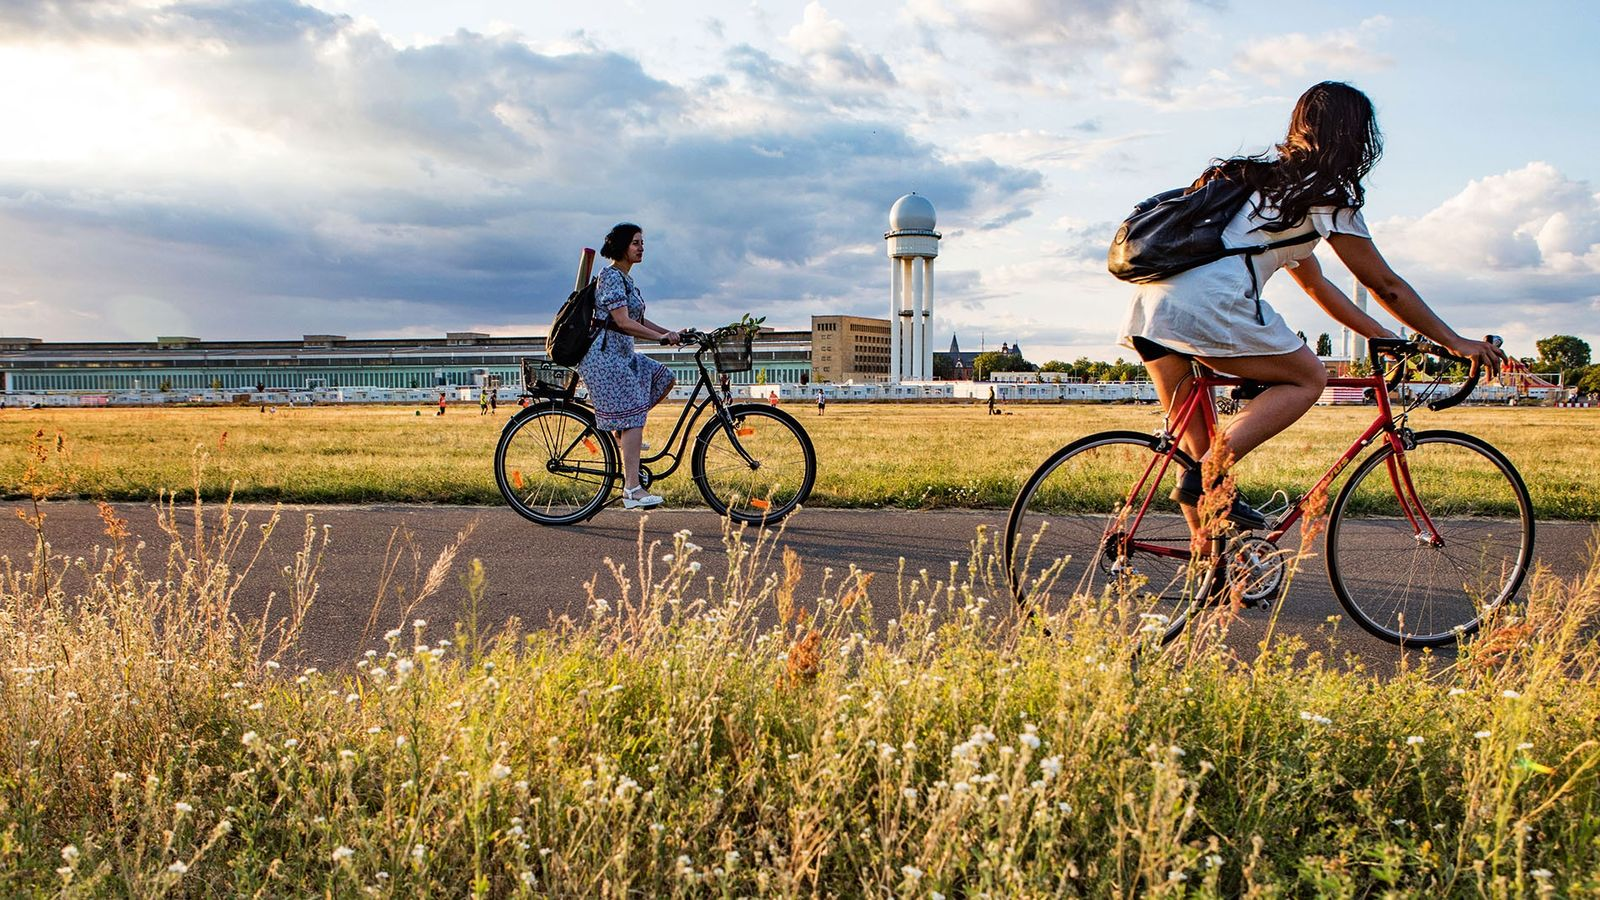 Cycling through Tempelhofer Feld